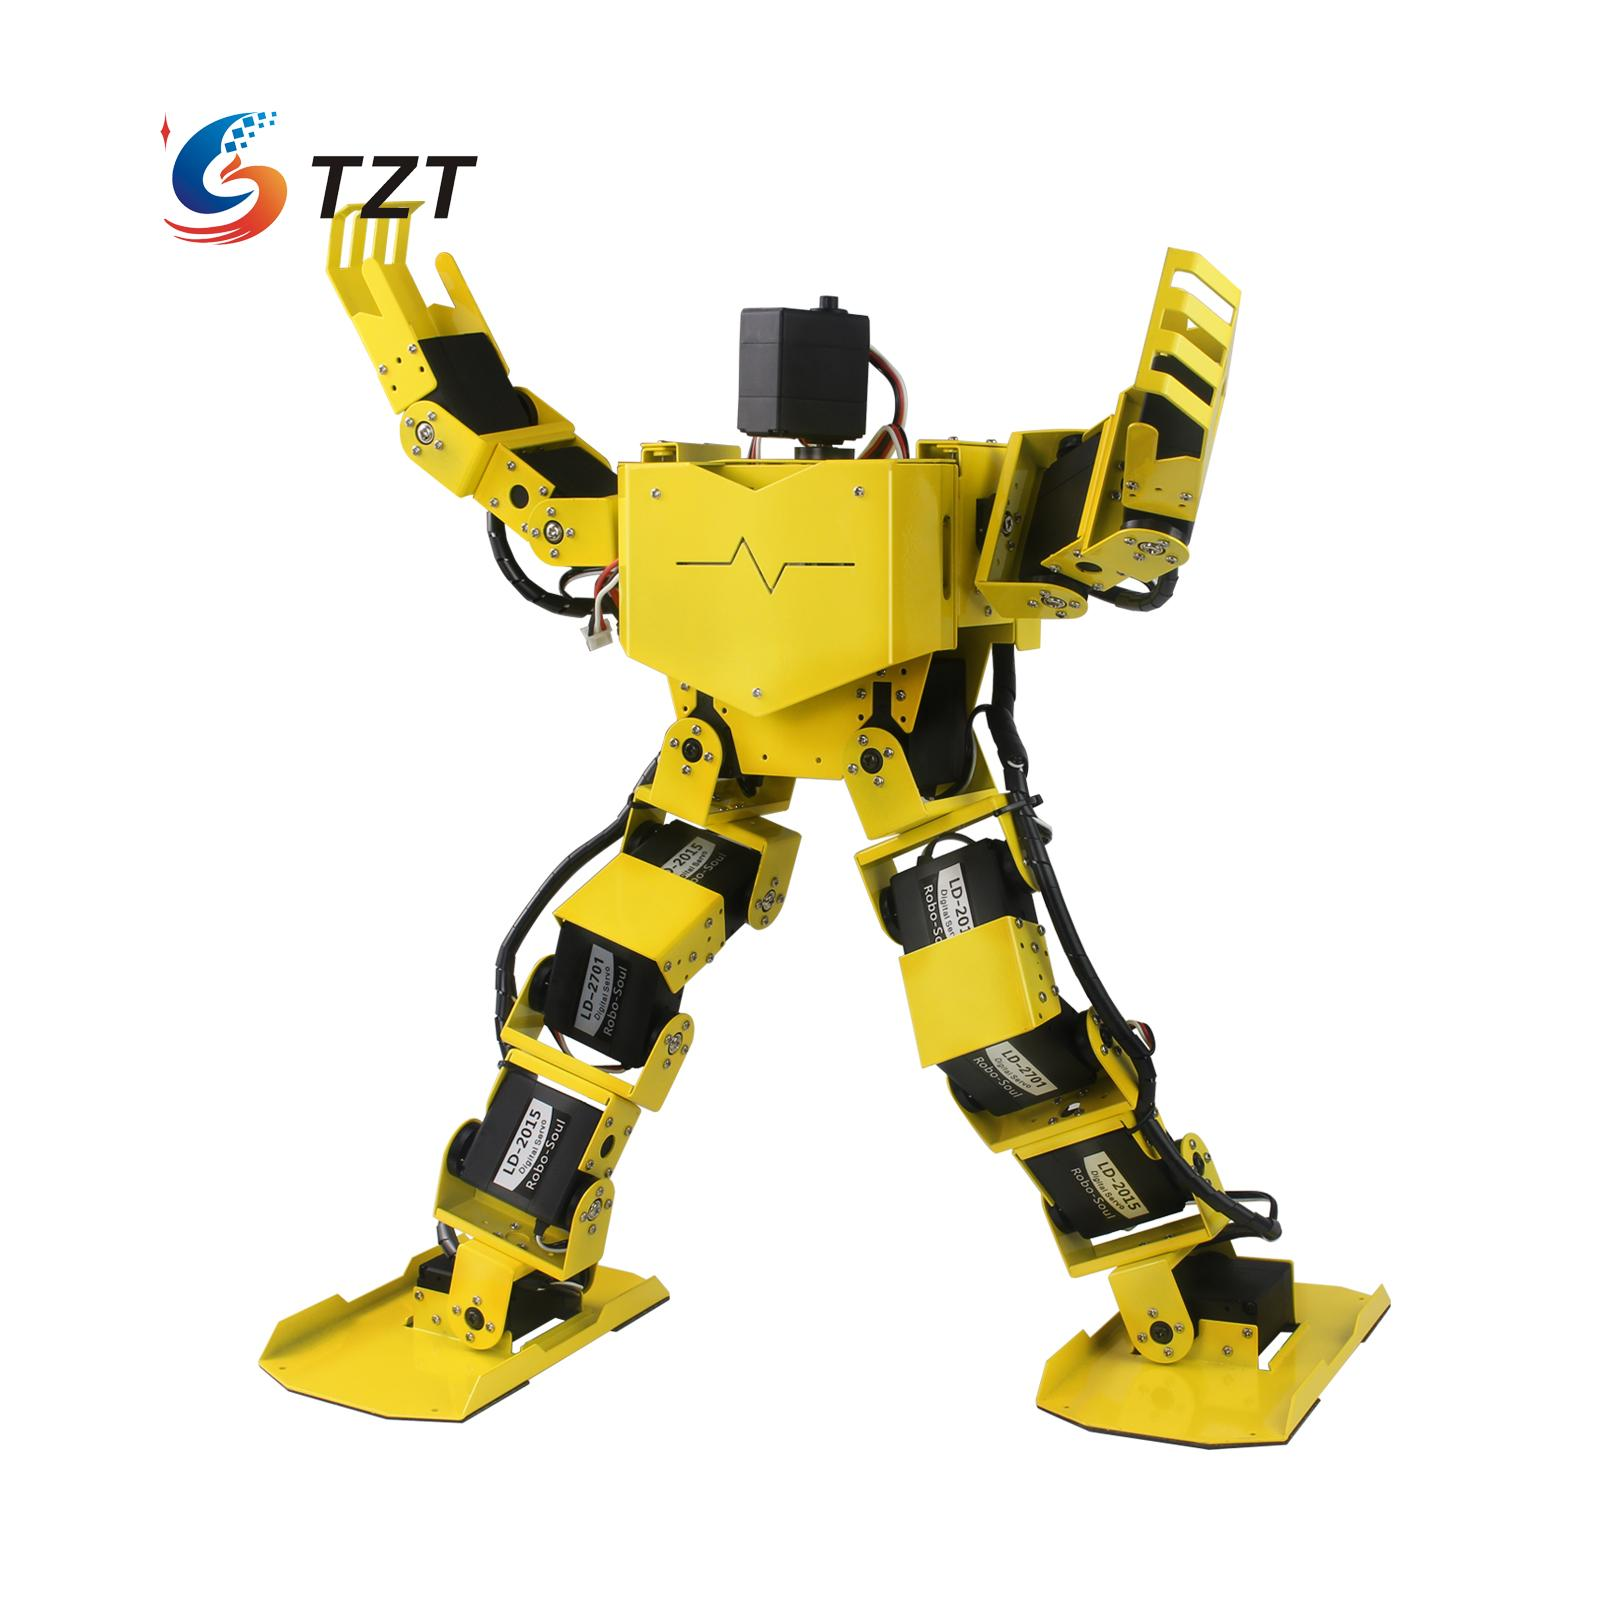 17DOF Biped Robotics Humanoid Robot Frame Full Kit with 17pcs Servo + 32 Channel Controller Robo-Soul H3.0-Yellow new 17 degrees of freedom humanoid biped robot teaching and research biped robot platform model no electronic control system